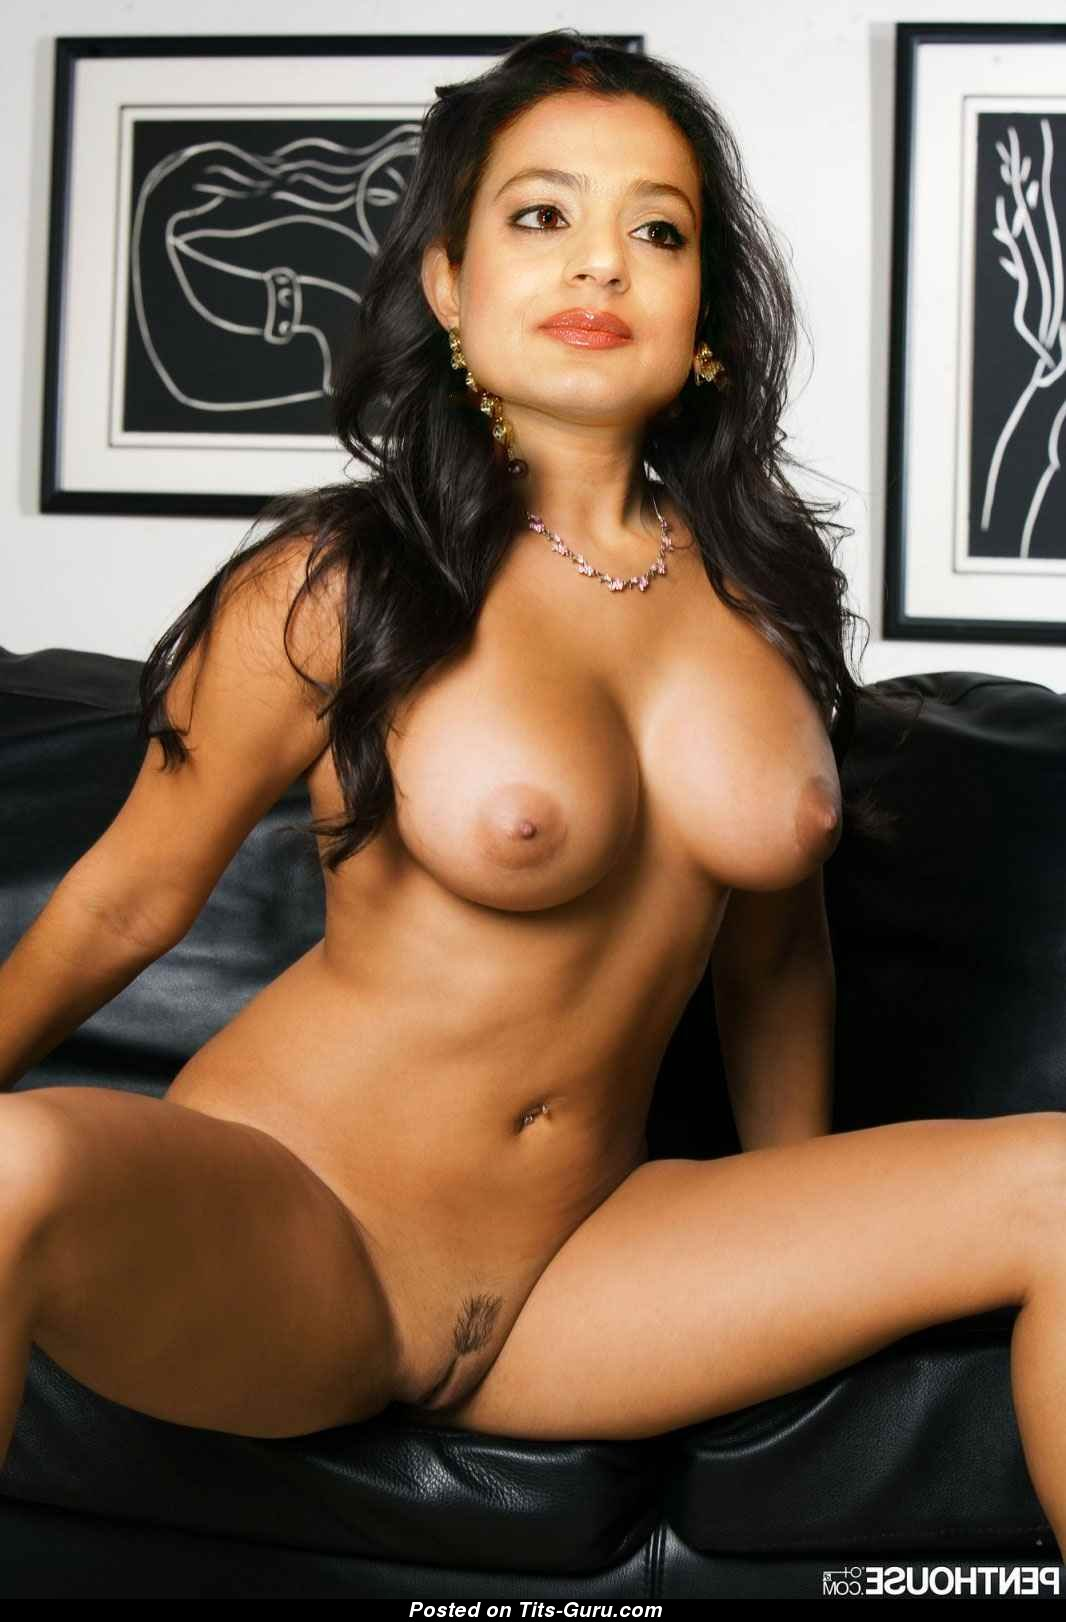 What Nude amisha you porn